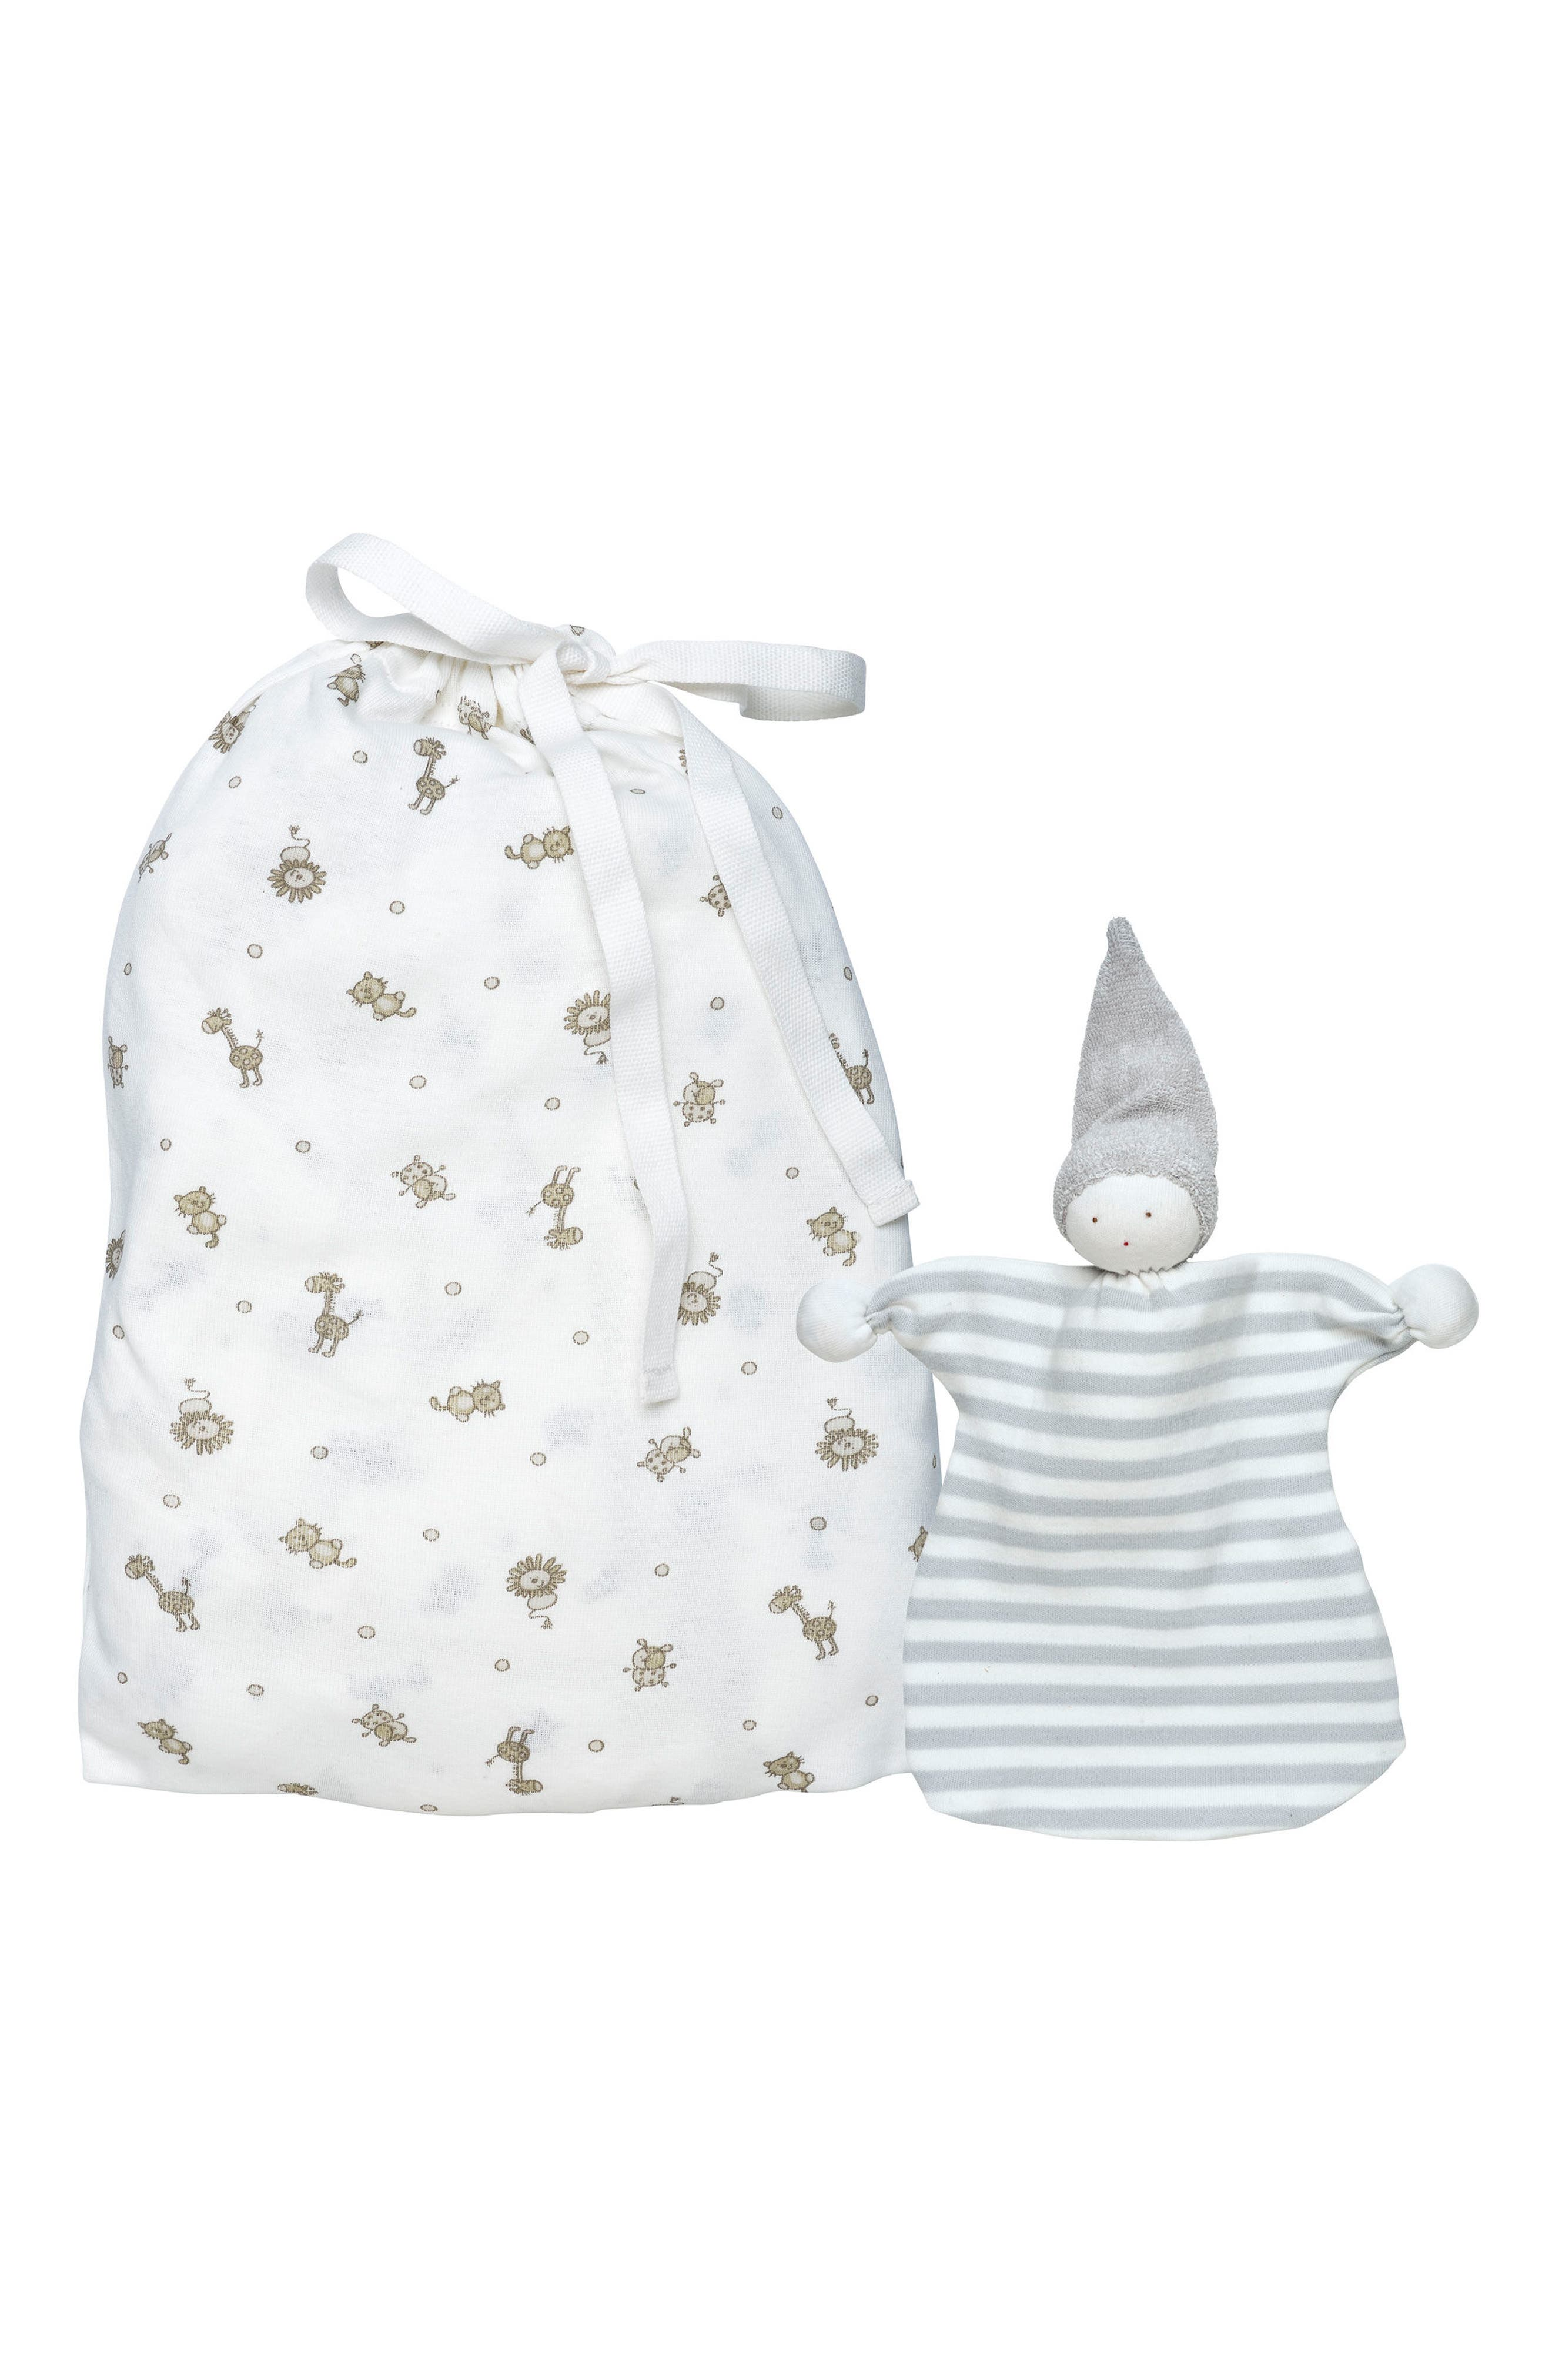 2-Piece Safari Print Fitted Crib Sheet & Stuffed Elephant Toy Set,                             Main thumbnail 1, color,                             White